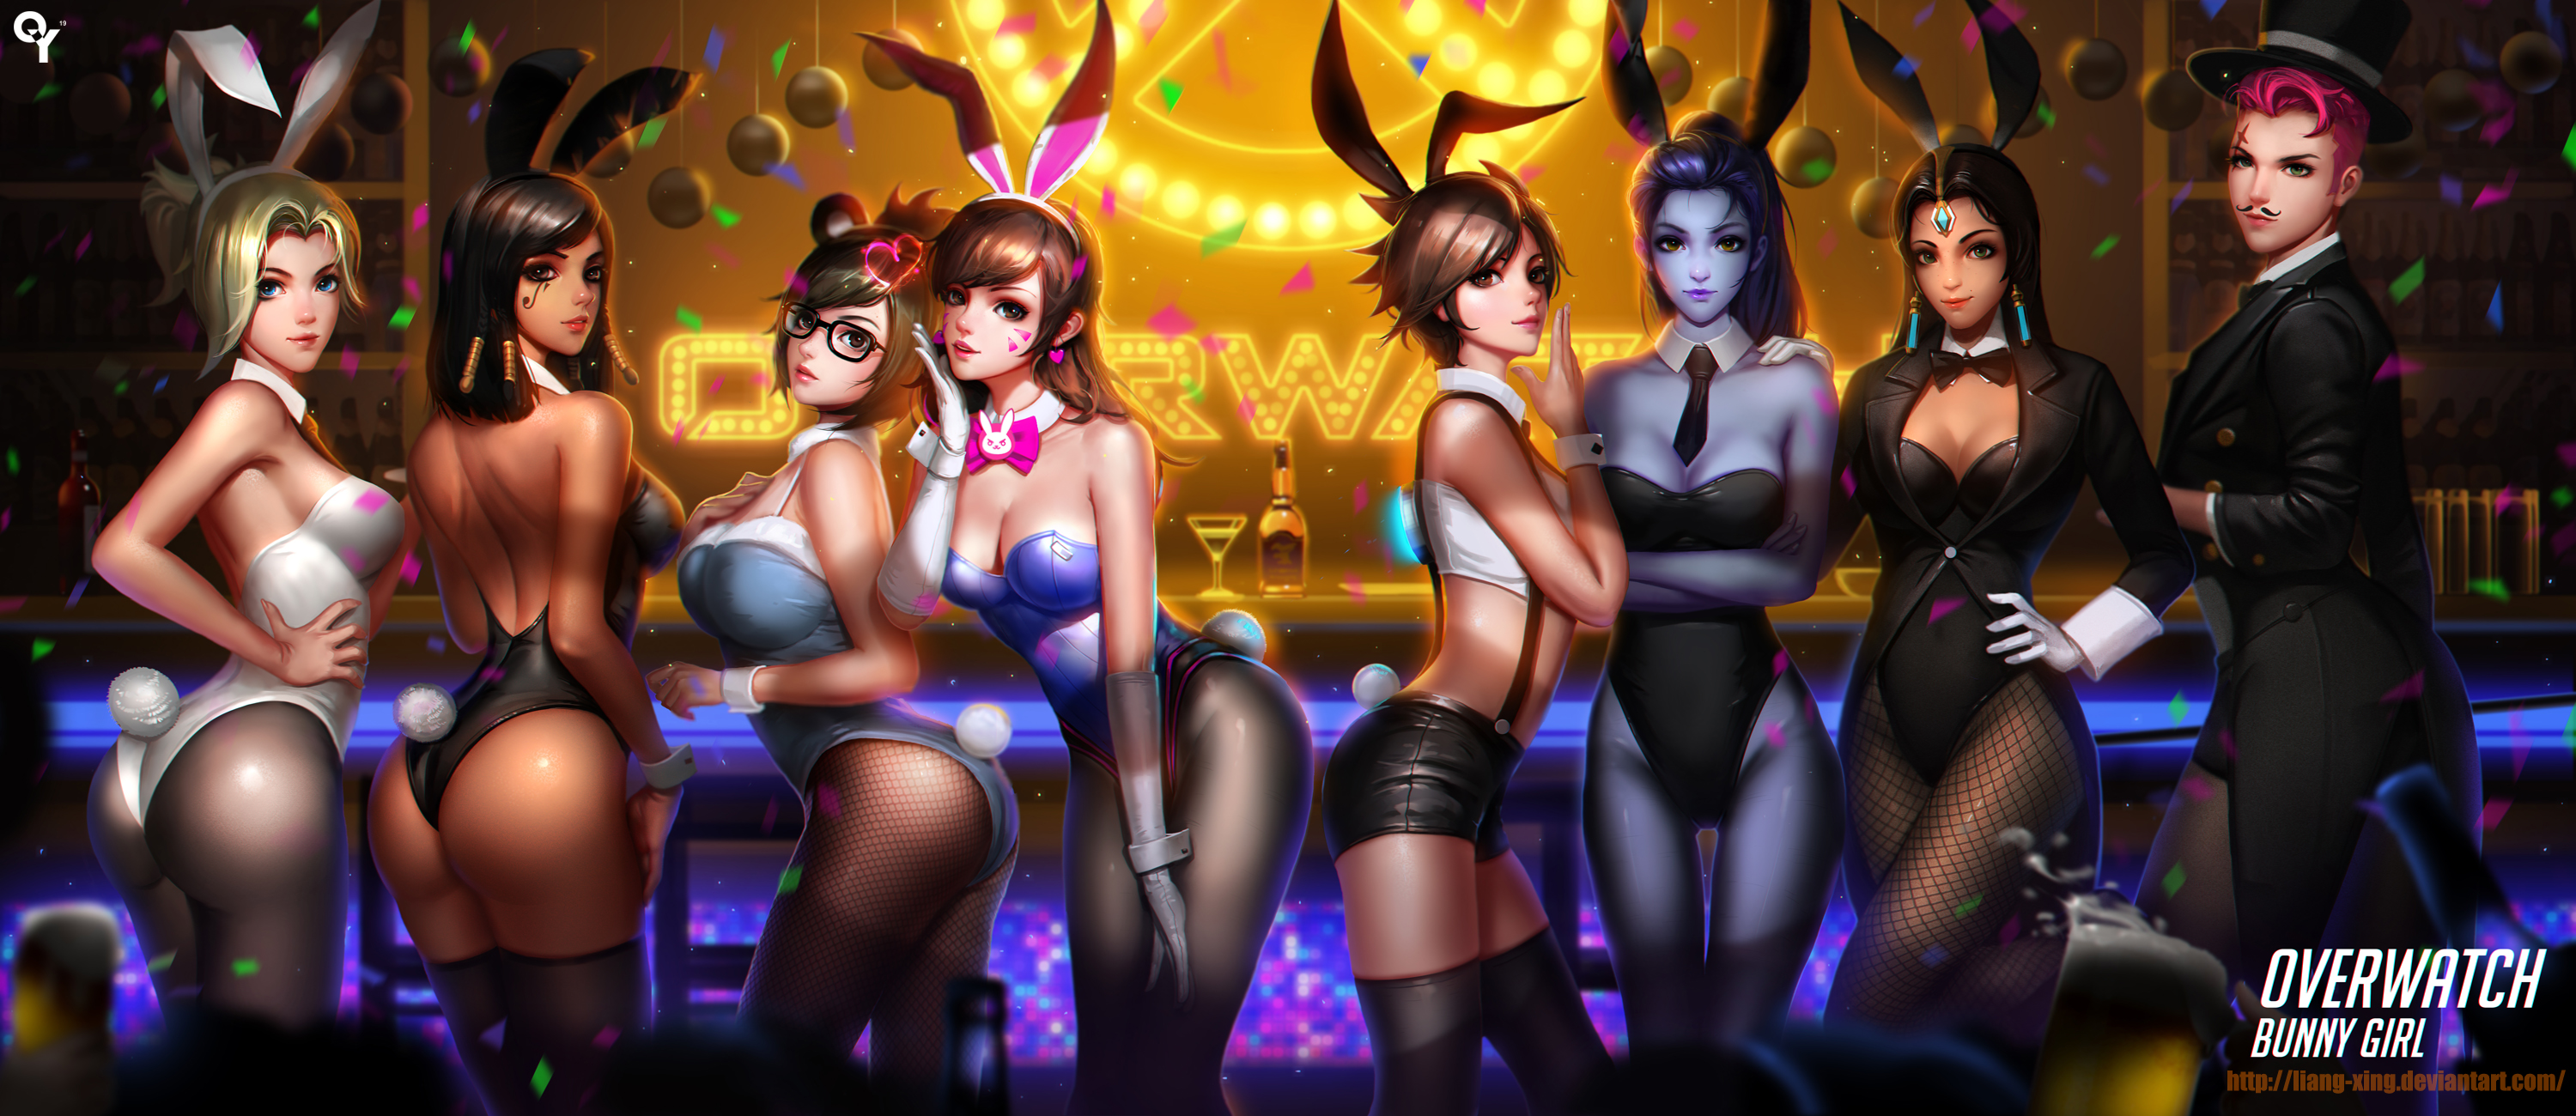 All Overwatch Girls Naked overwatch bunny girlliang-xing on deviantart